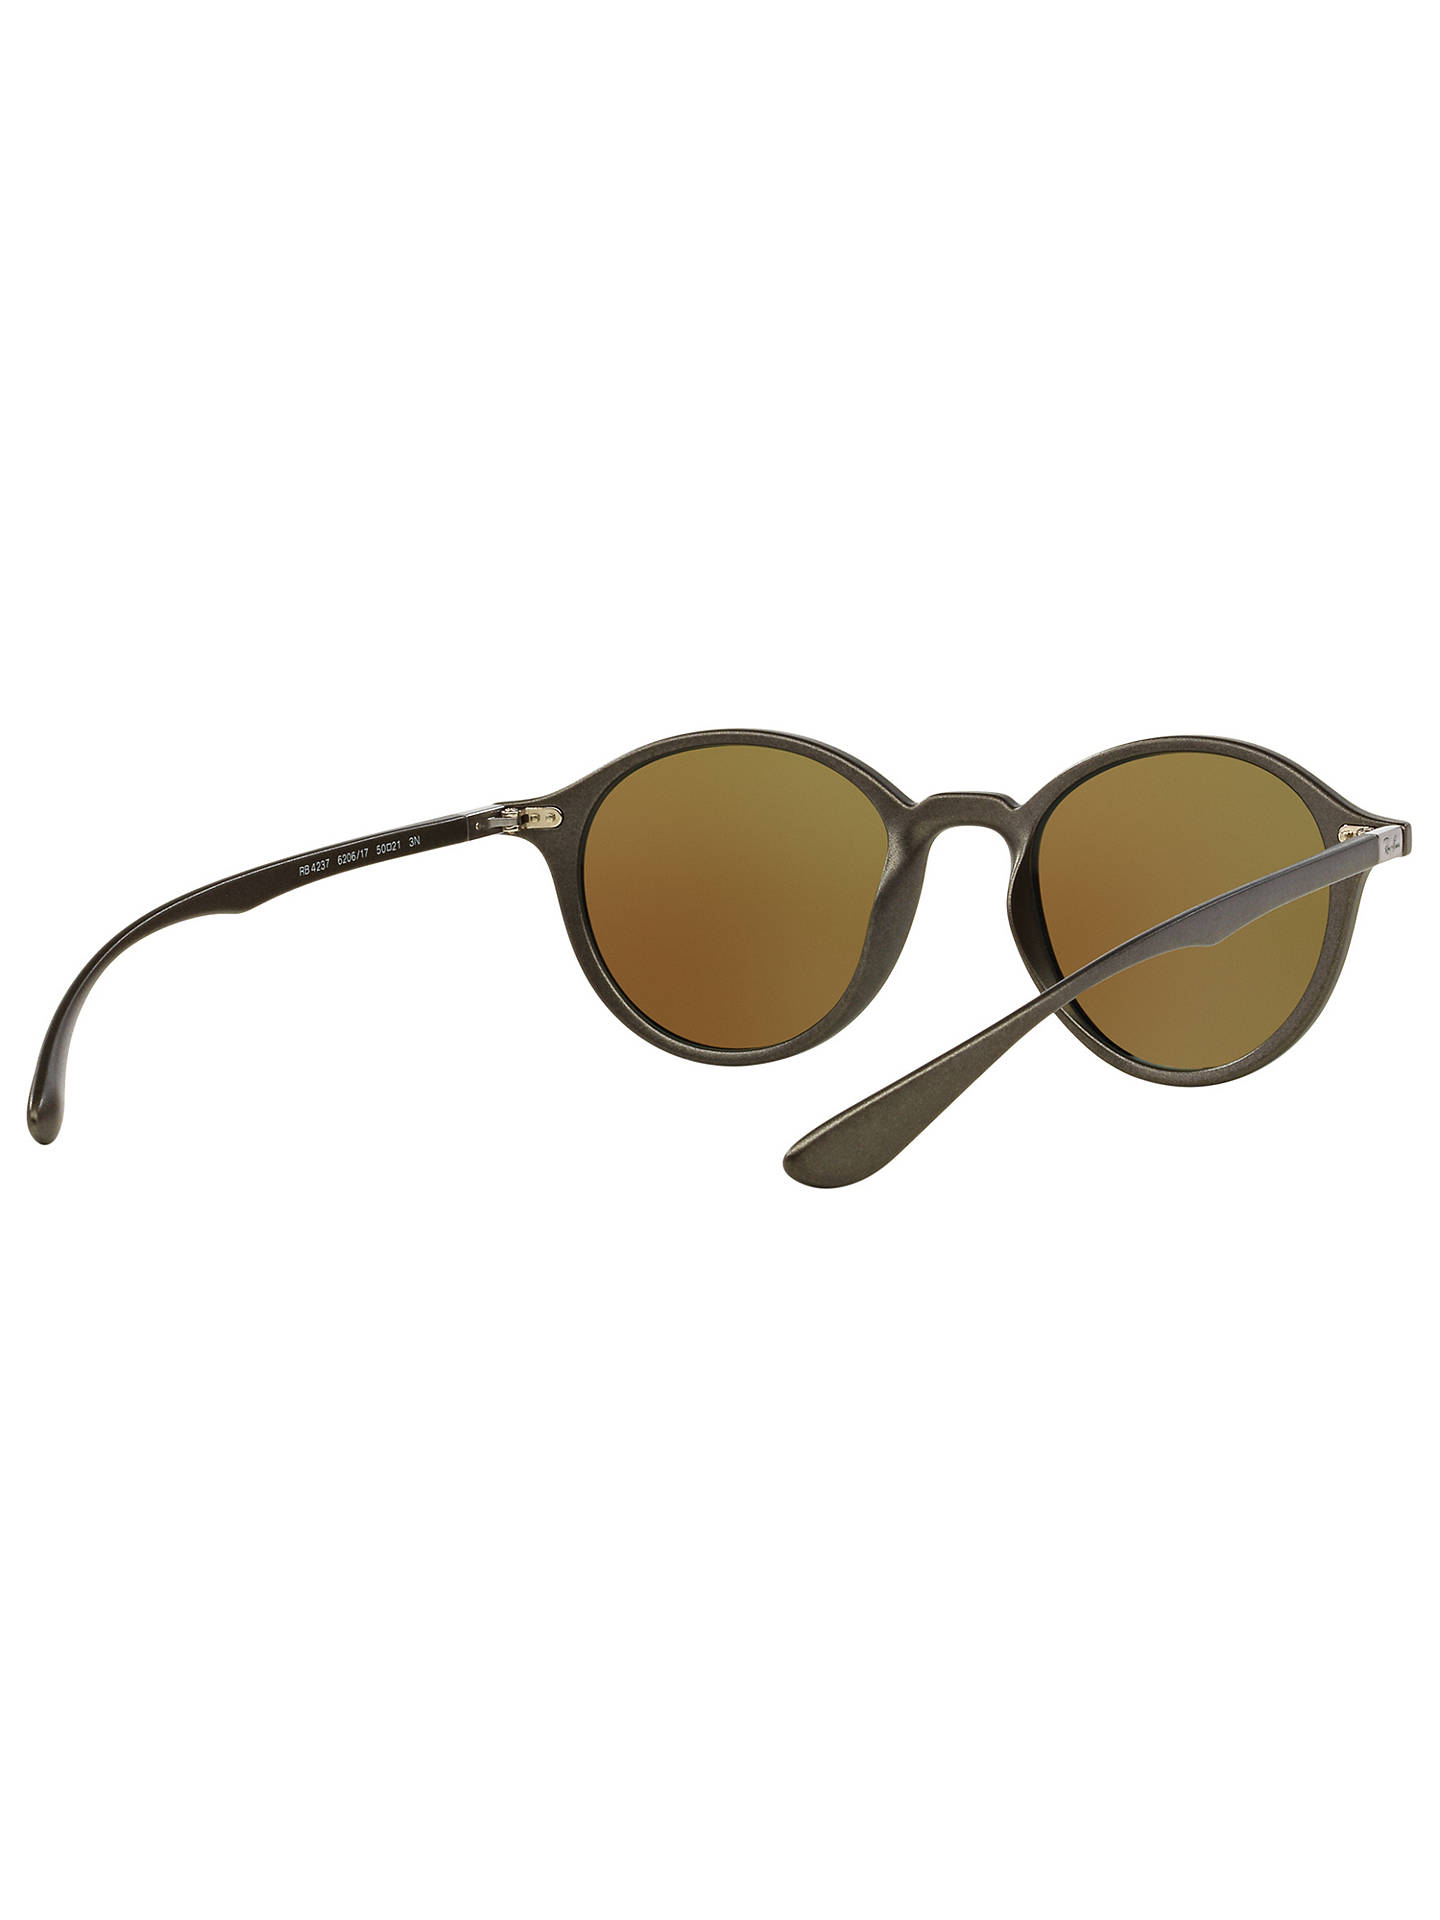 BuyRay-Ban RB4237 Oval Sunglasses, Dark Grey/Mirror Turquoise Online at johnlewis.com